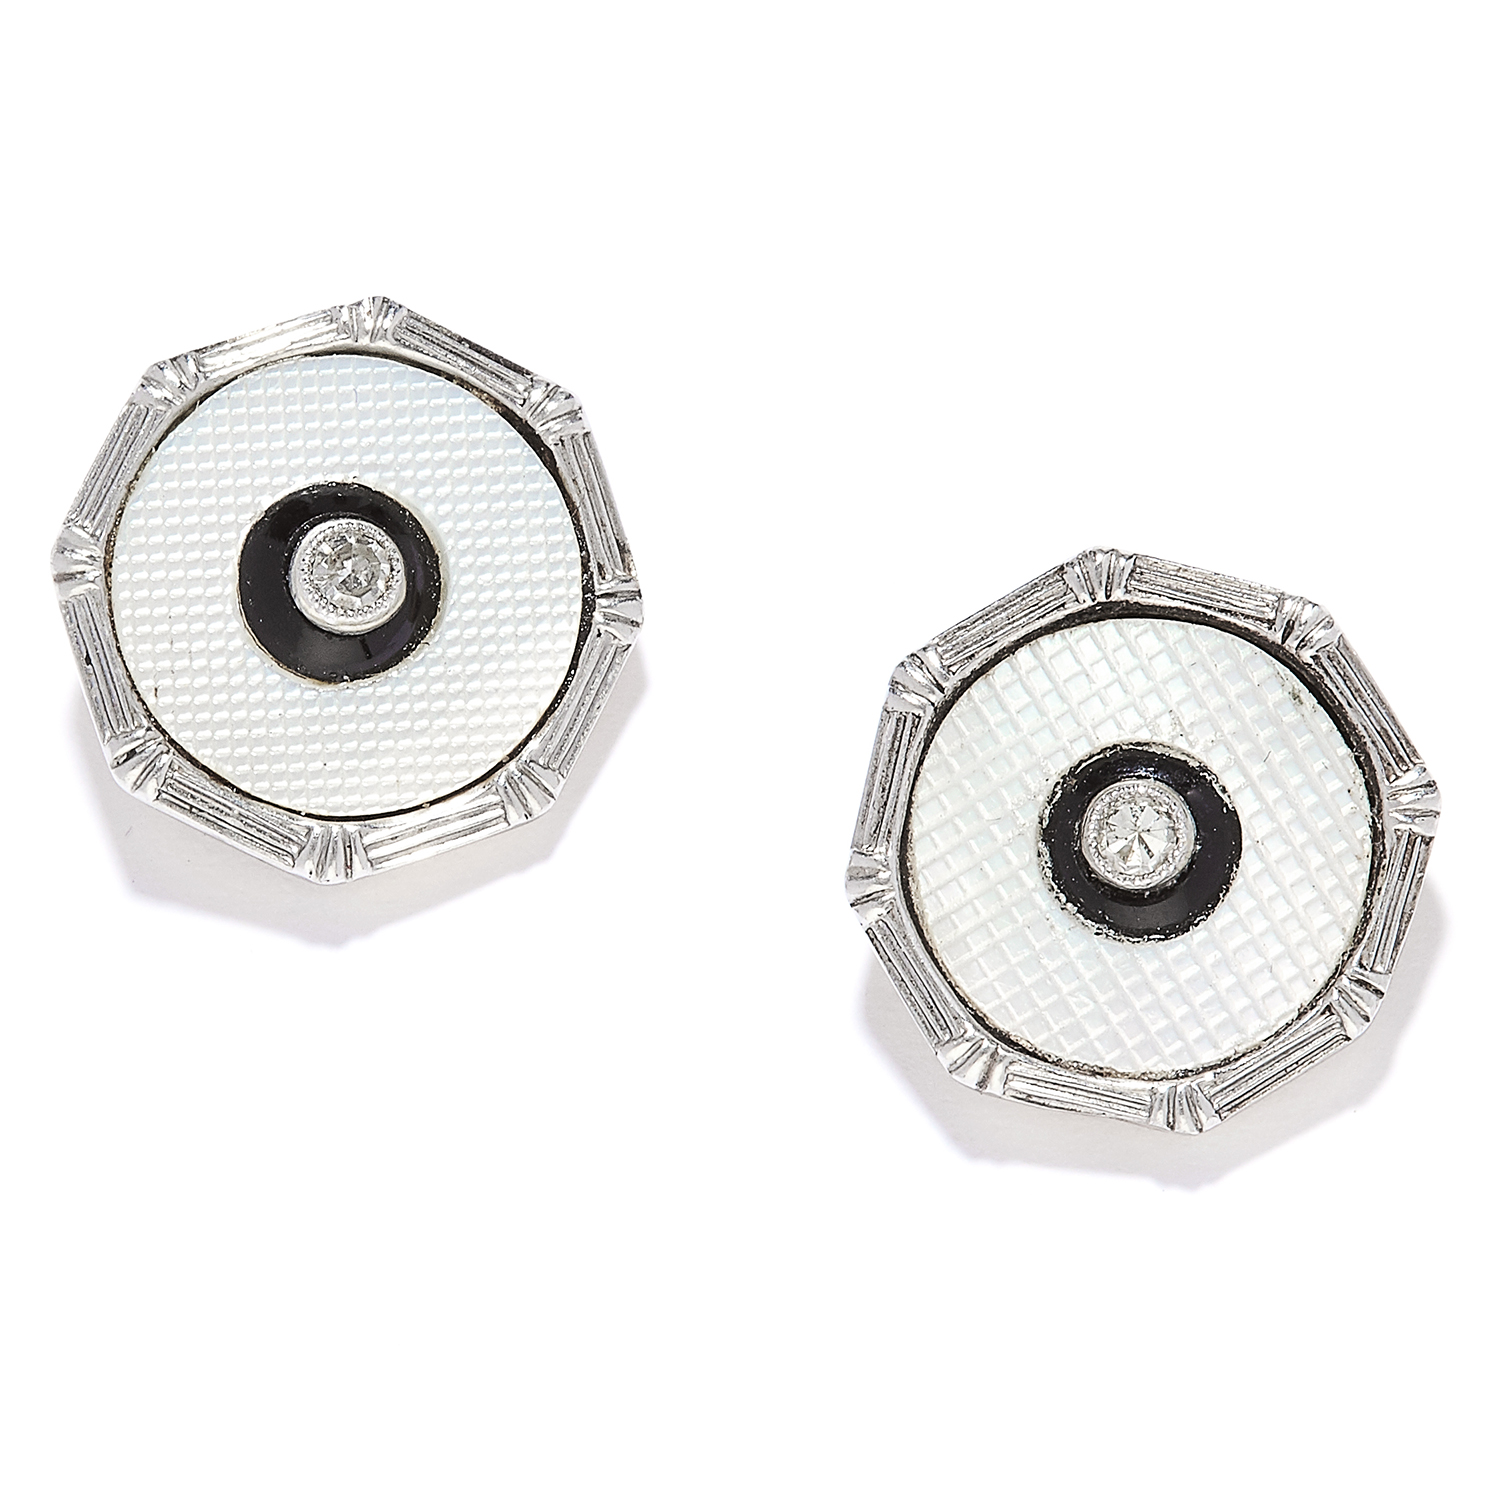 A PAIR OF ANTIQUE ENAMEL, DIAMOND AND ONYX EAR STUDS in 18ct yellow gold and platinum, each set with